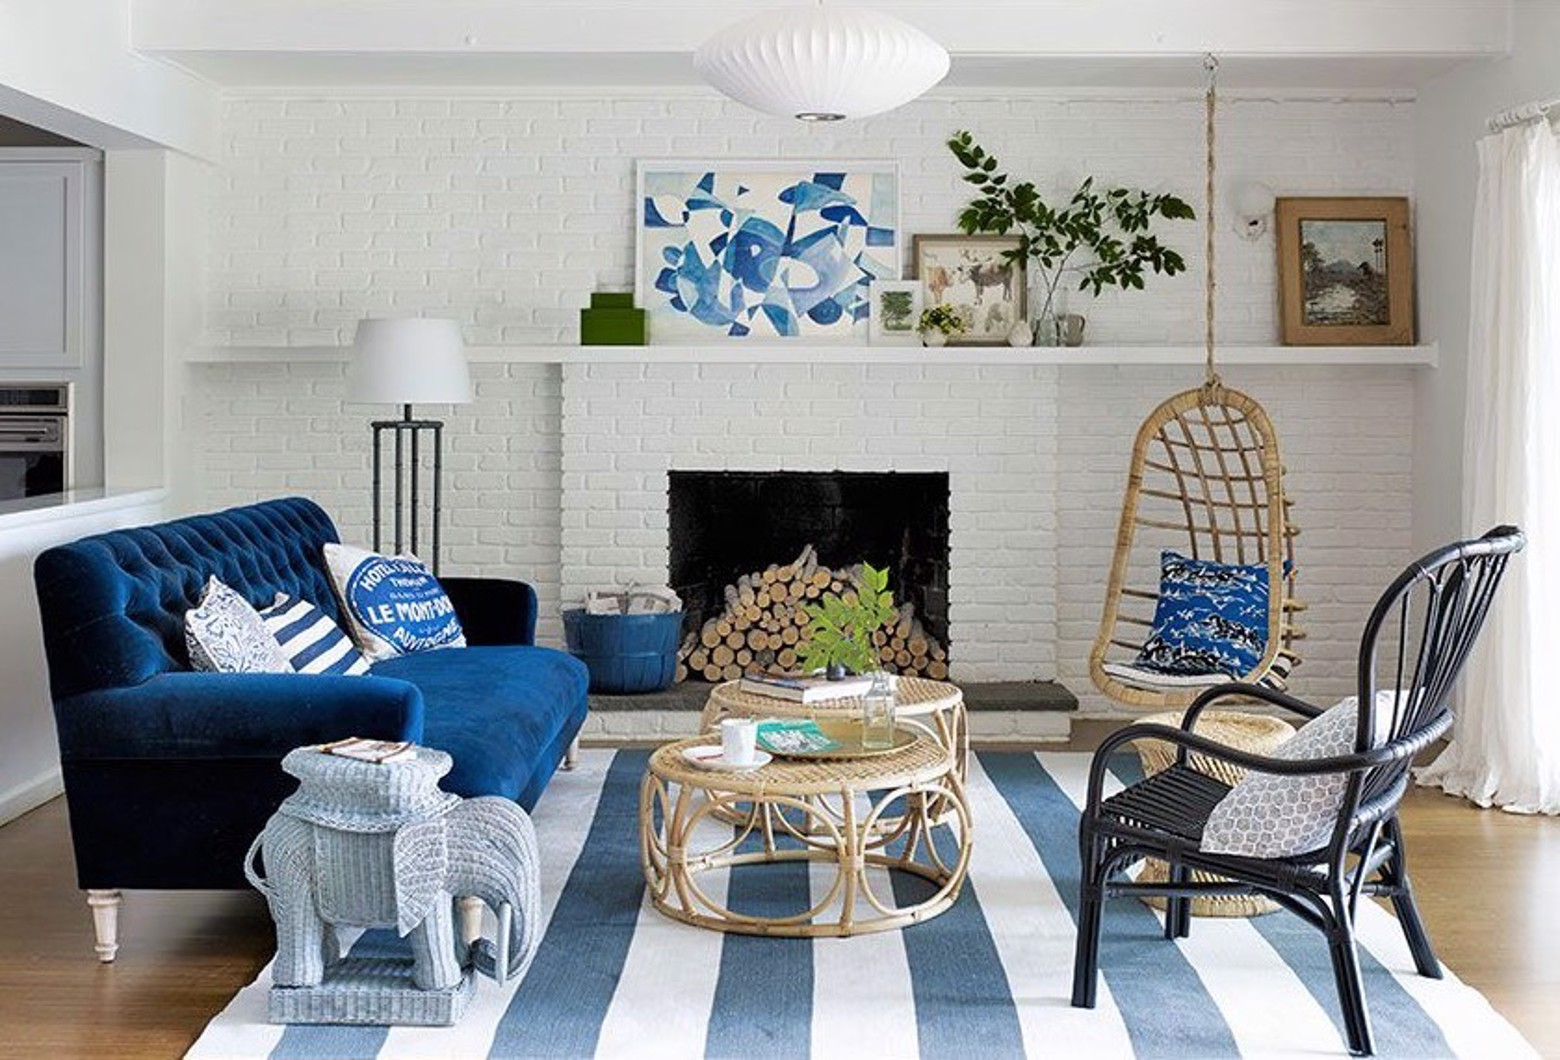 stripe decor.jpg image